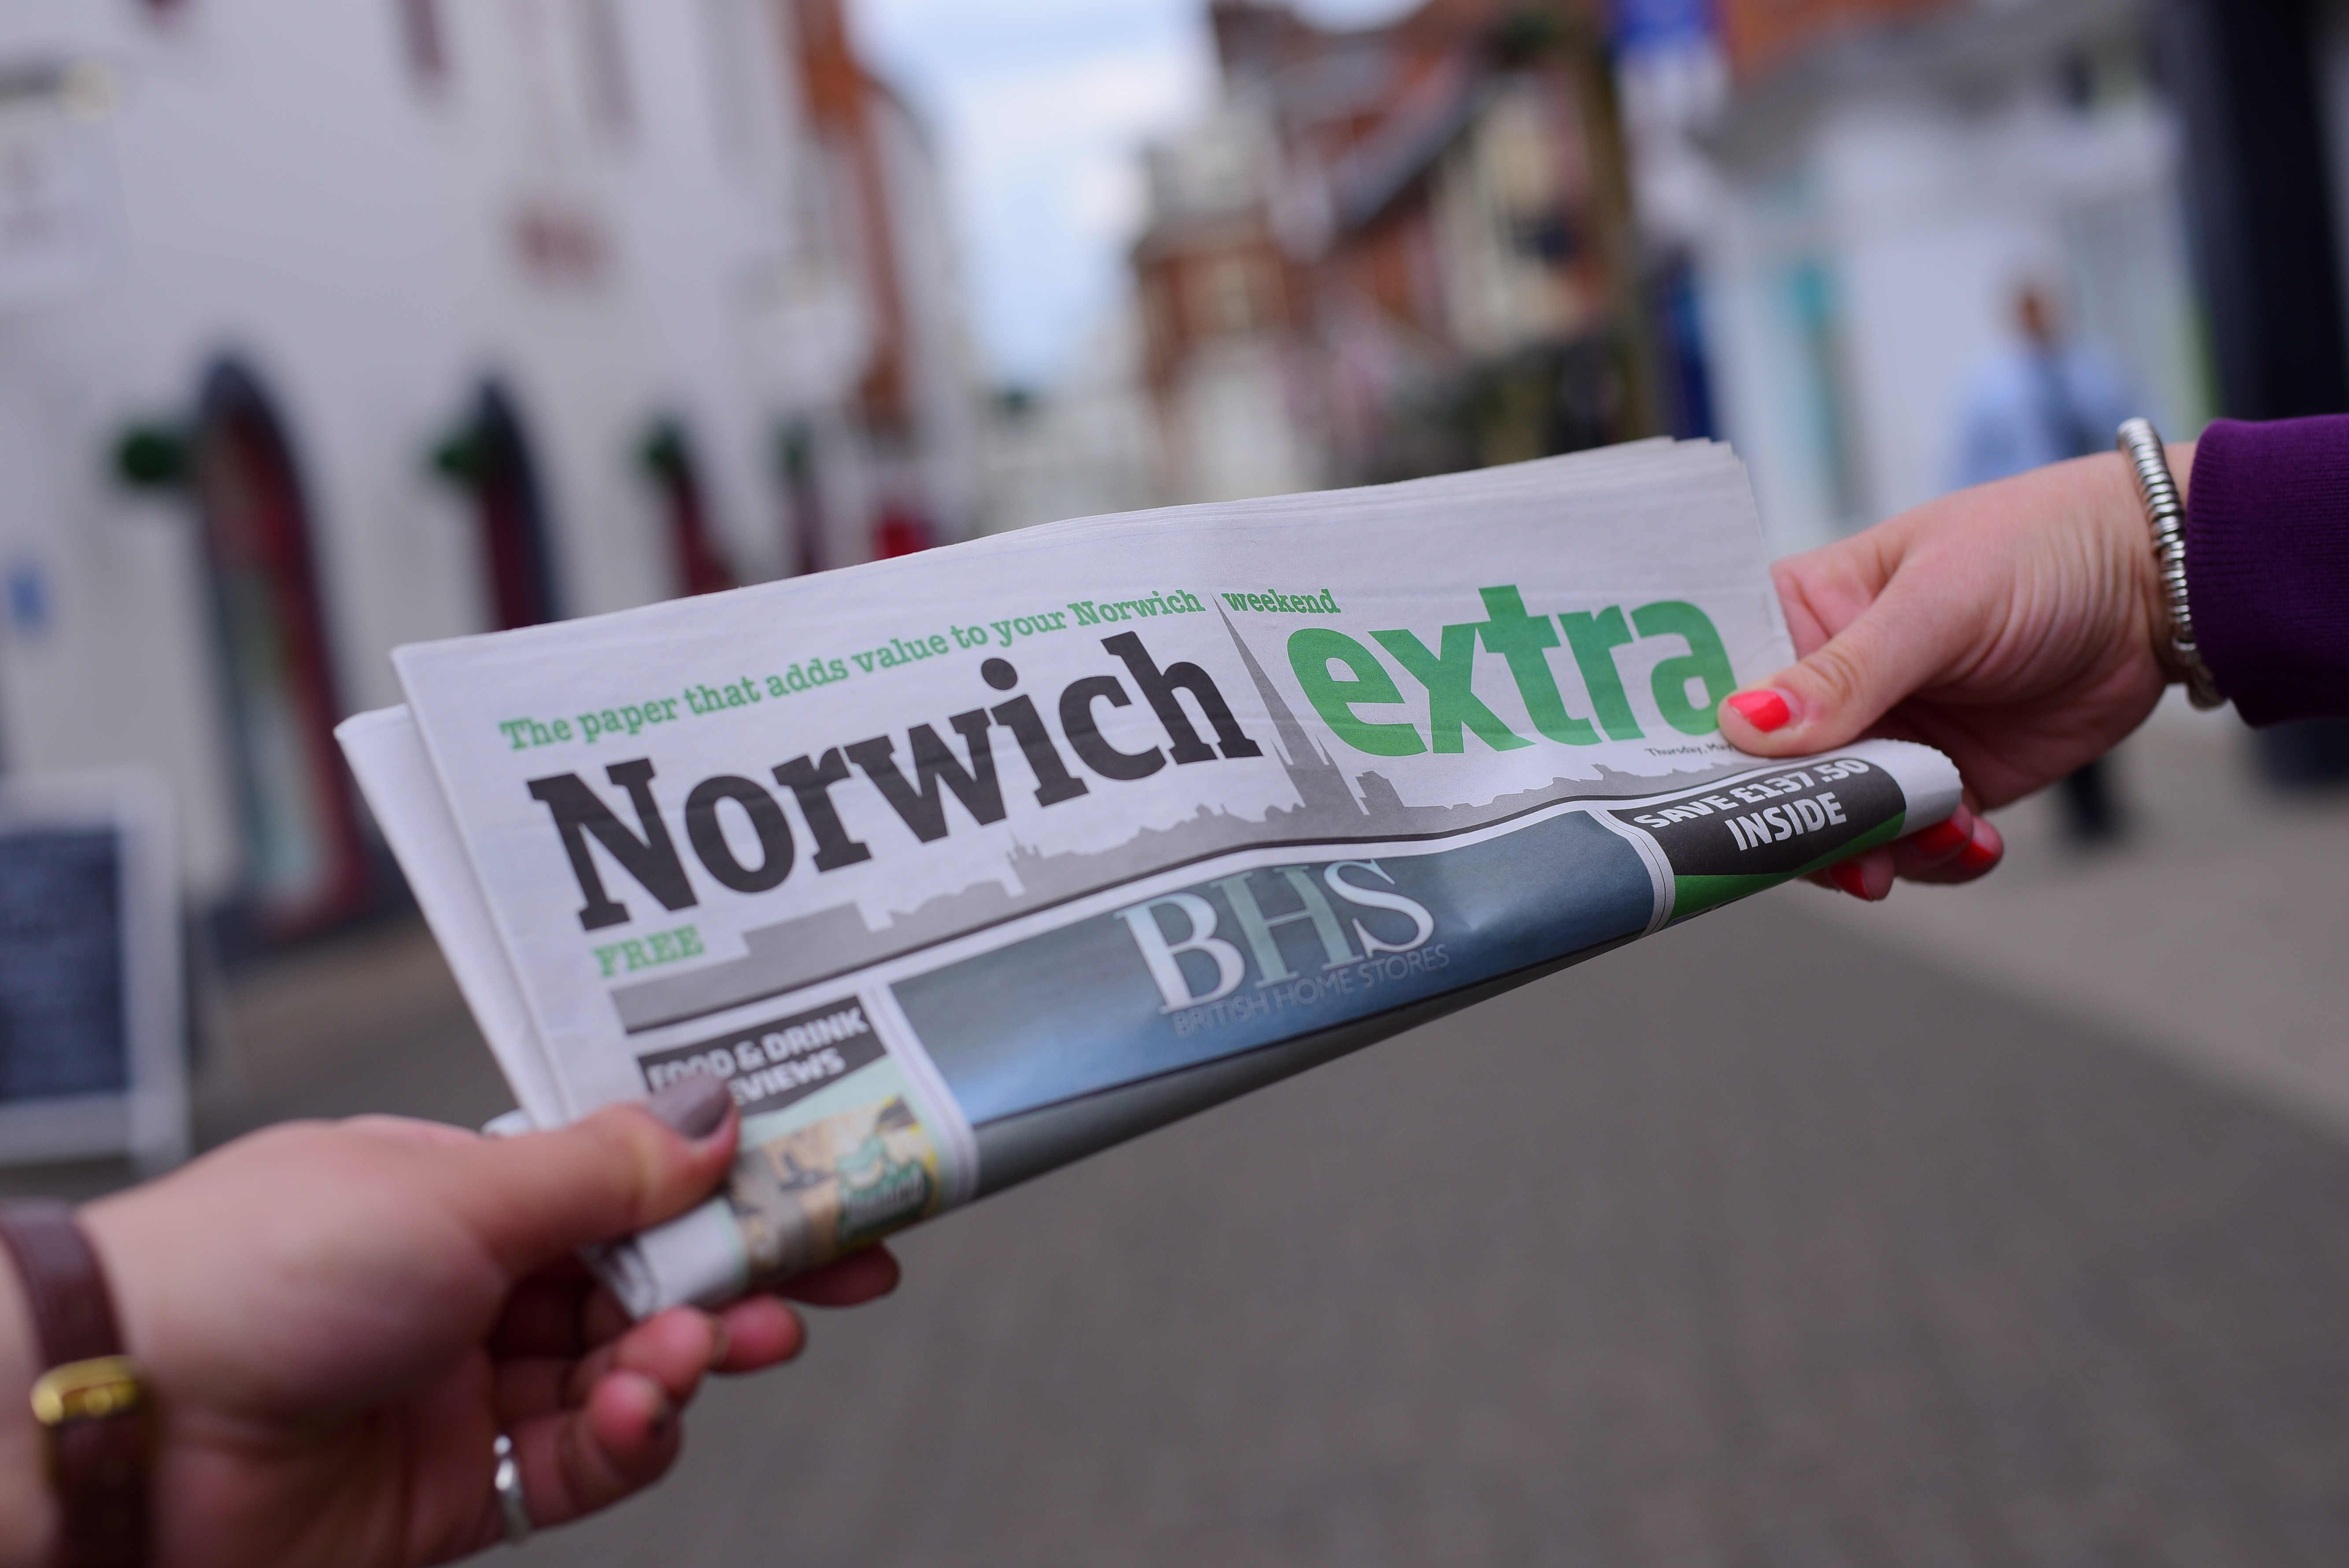 The Norwich Extra newspaper. Picture: Simon Finlay